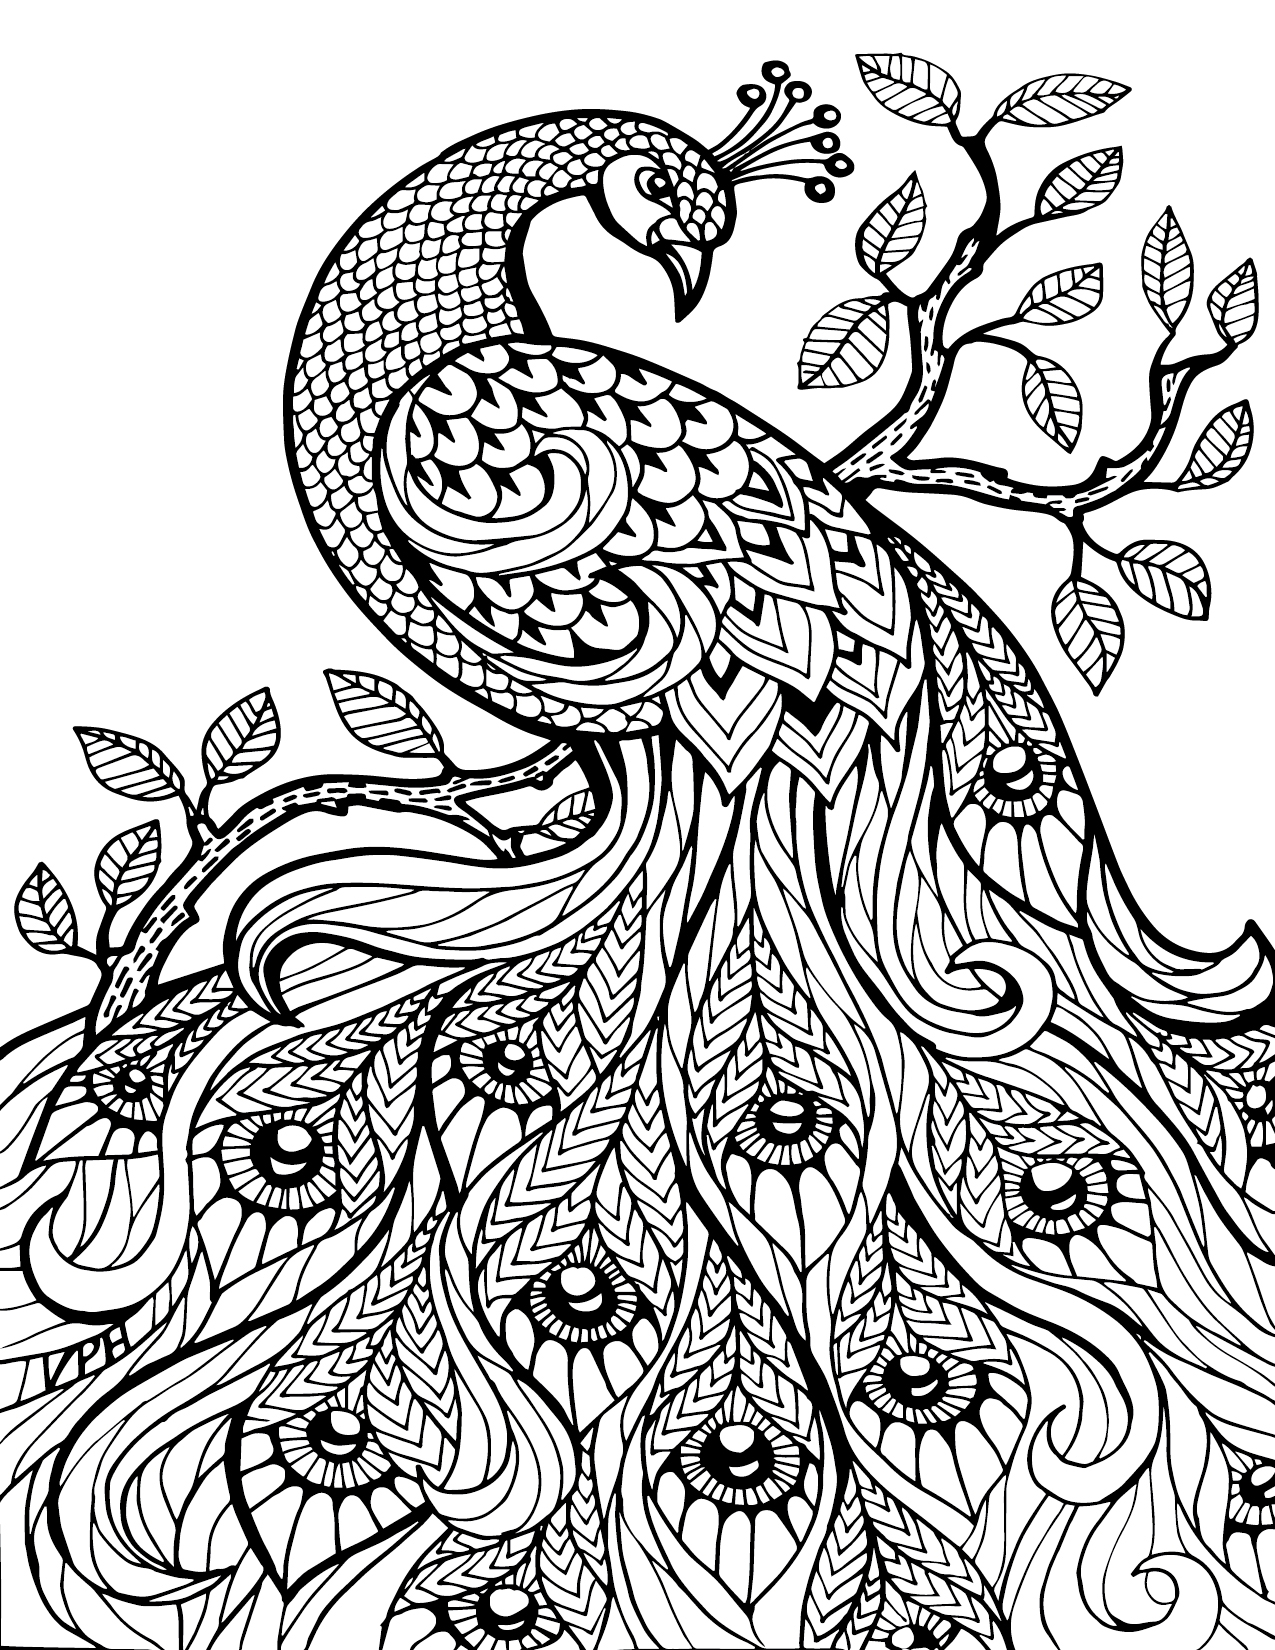 free printable coloring book pages for adults - cat coloring pages for adults